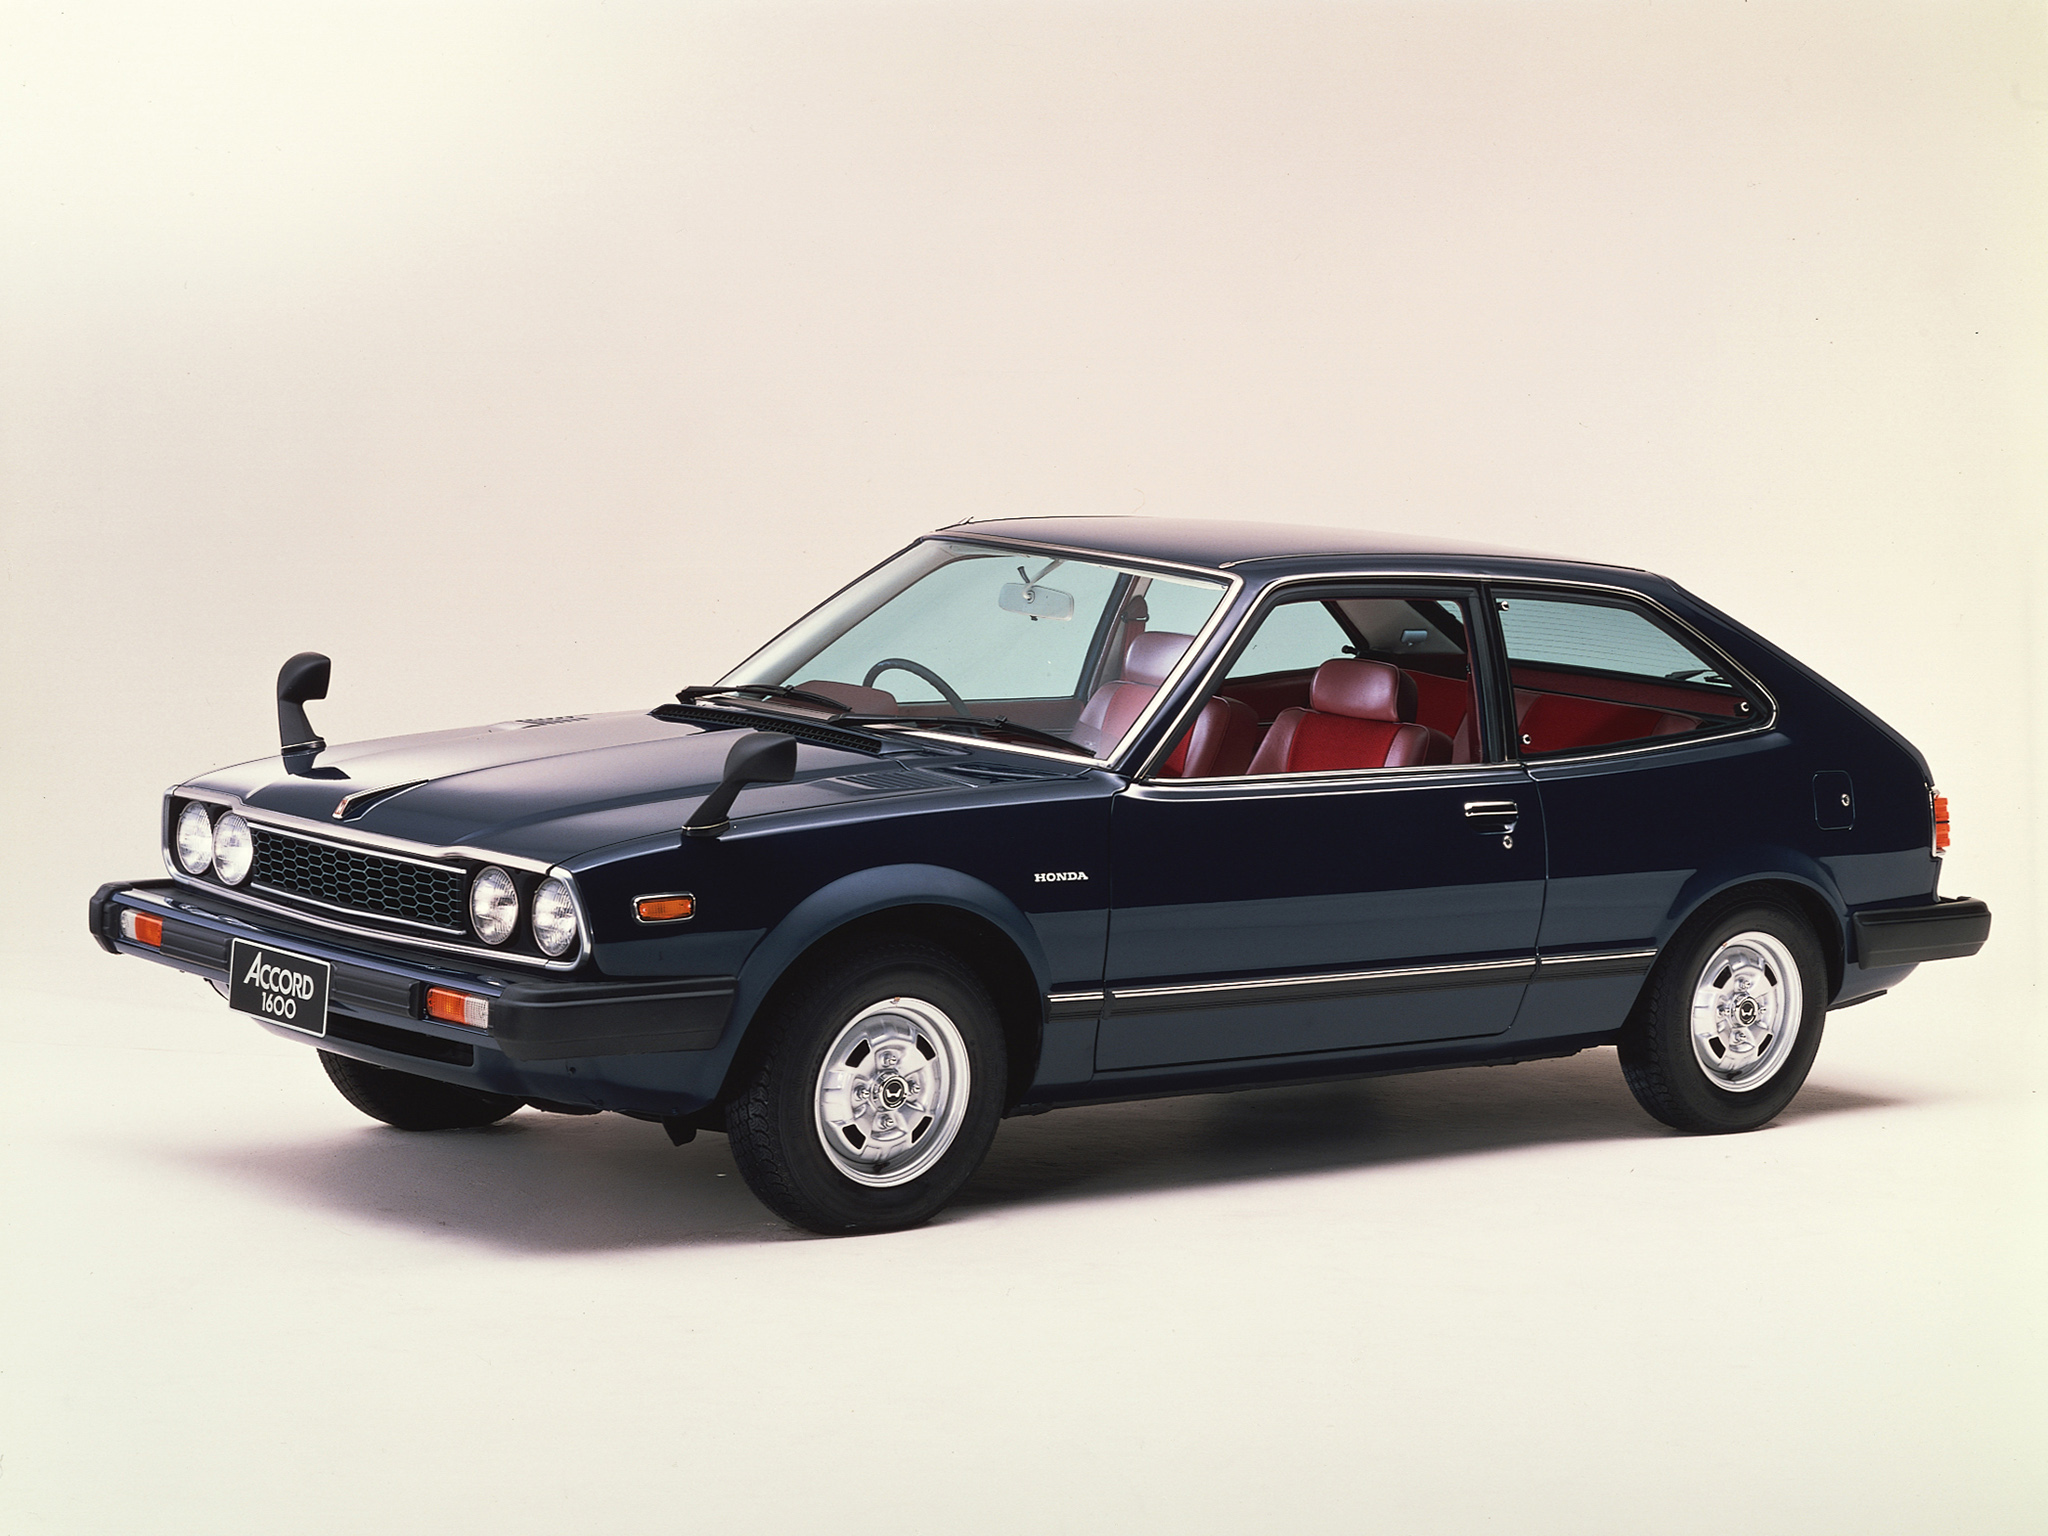 honda-accord1977-11782sm